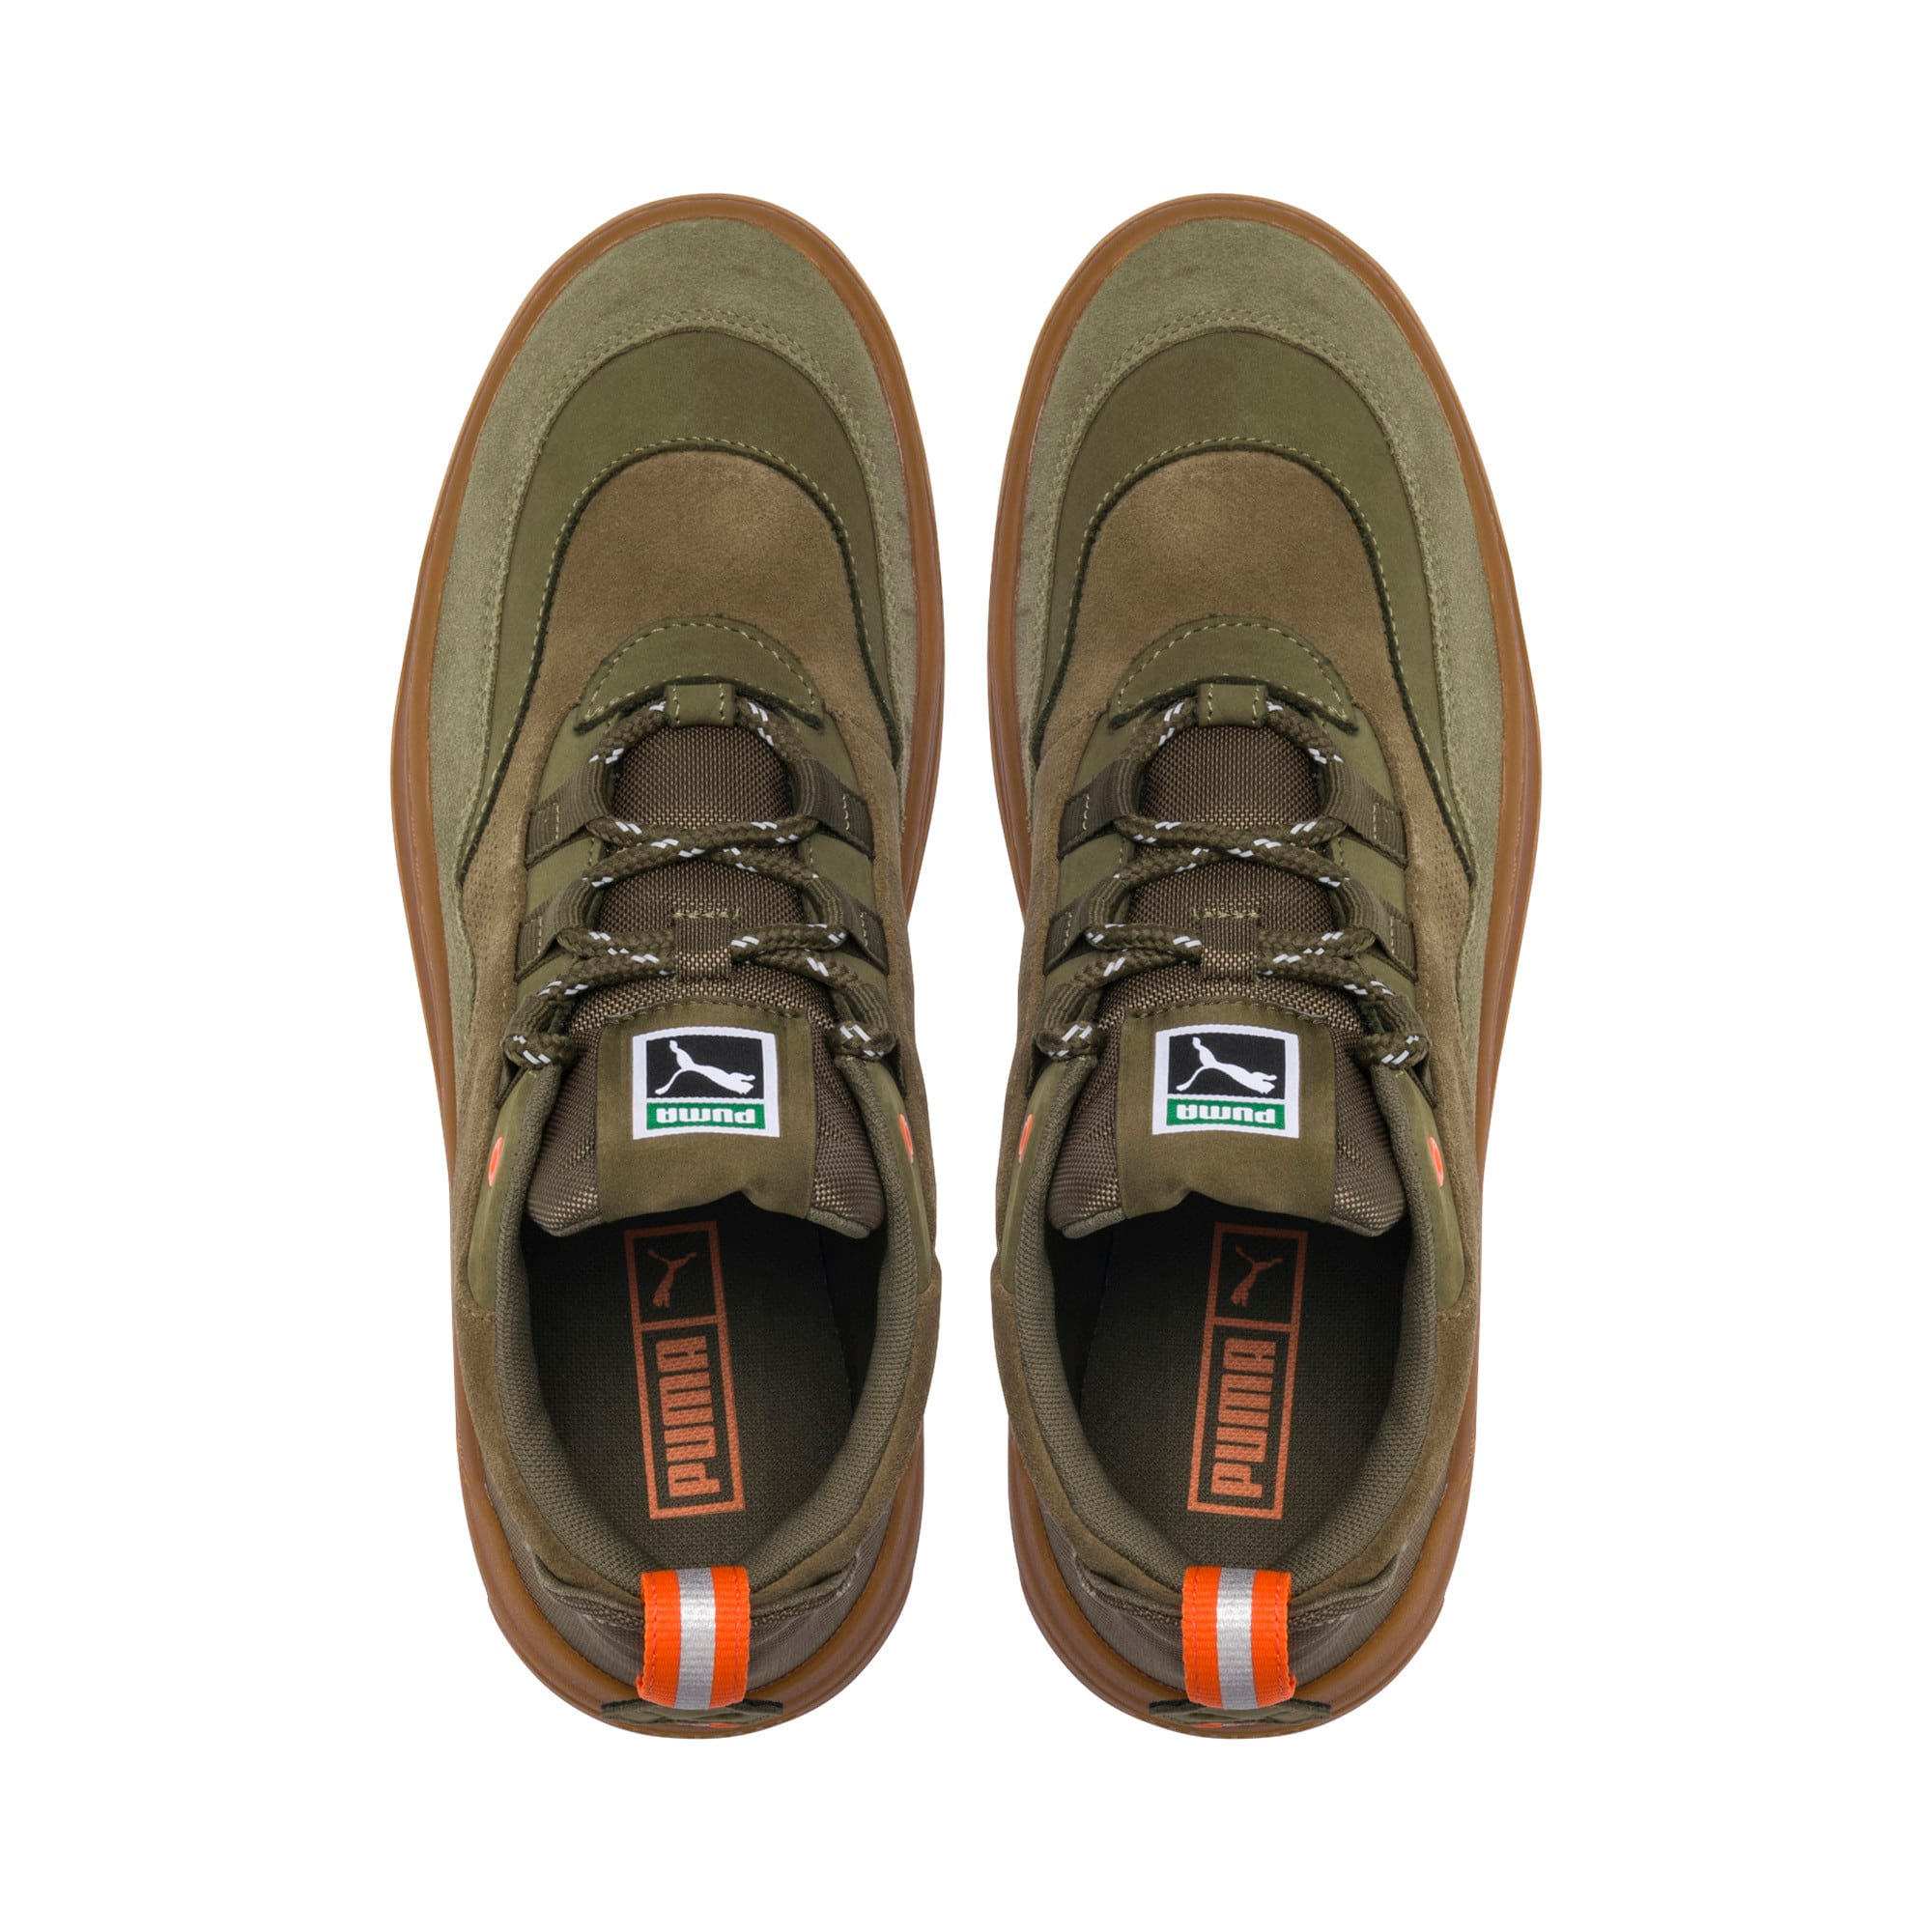 Thumbnail 6 of Cali Zero Demi Army Green Sneakers, Capulet Olive-Burnt Olive, medium